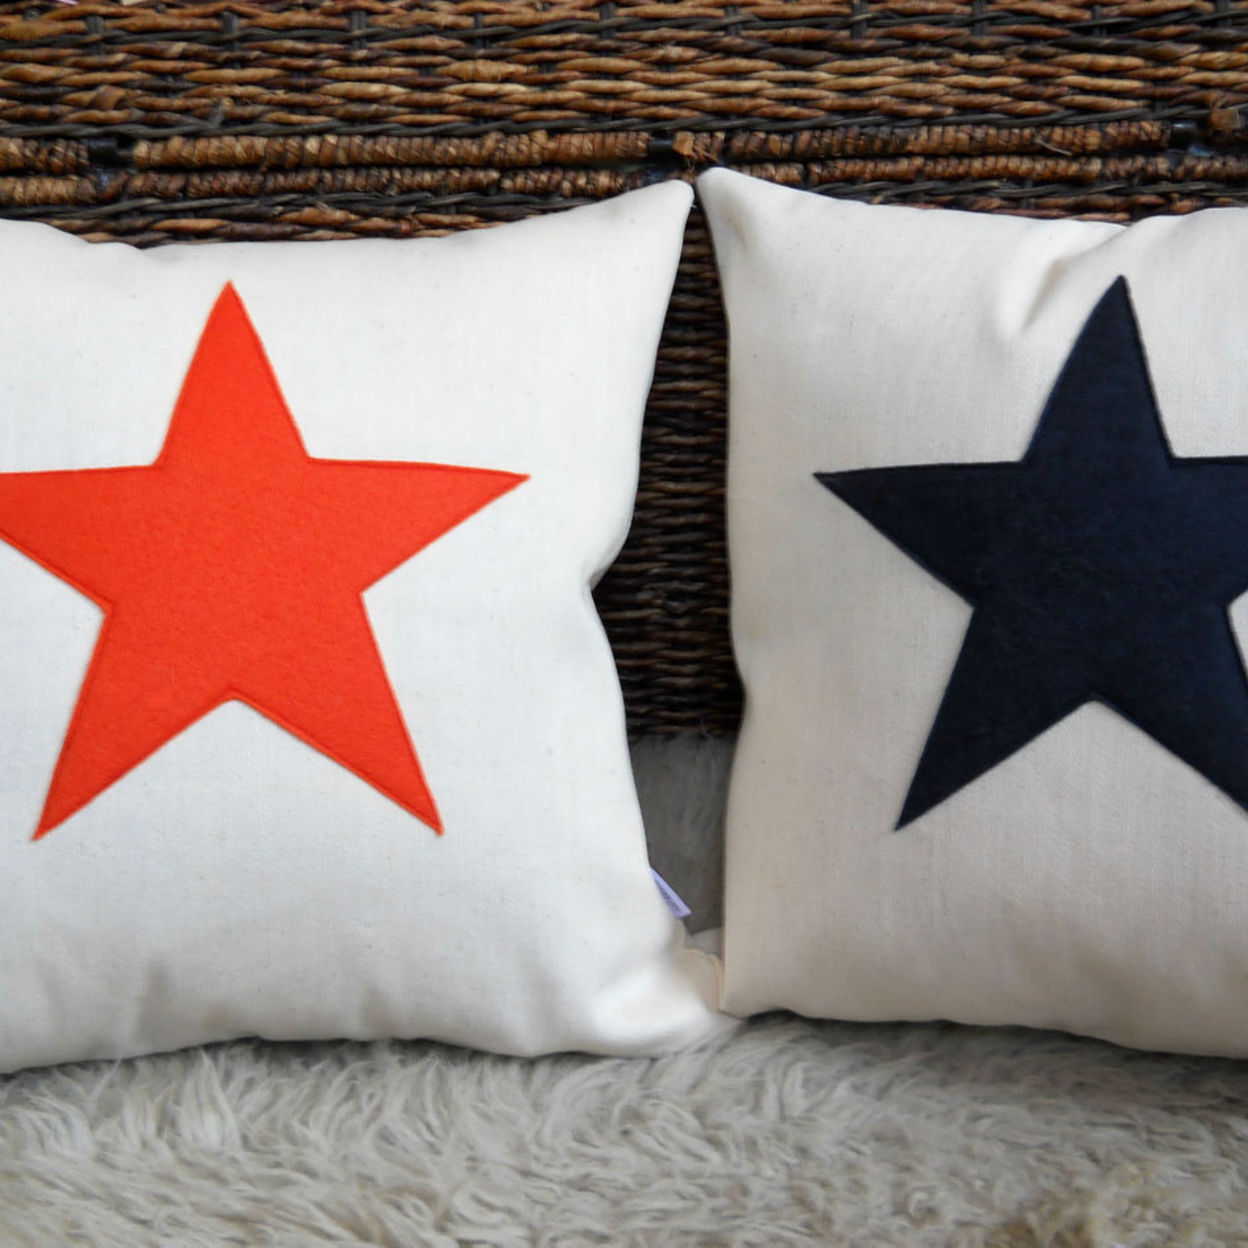 Star Scrabble Inspired Felt Star Canvas Cushion Cover Only